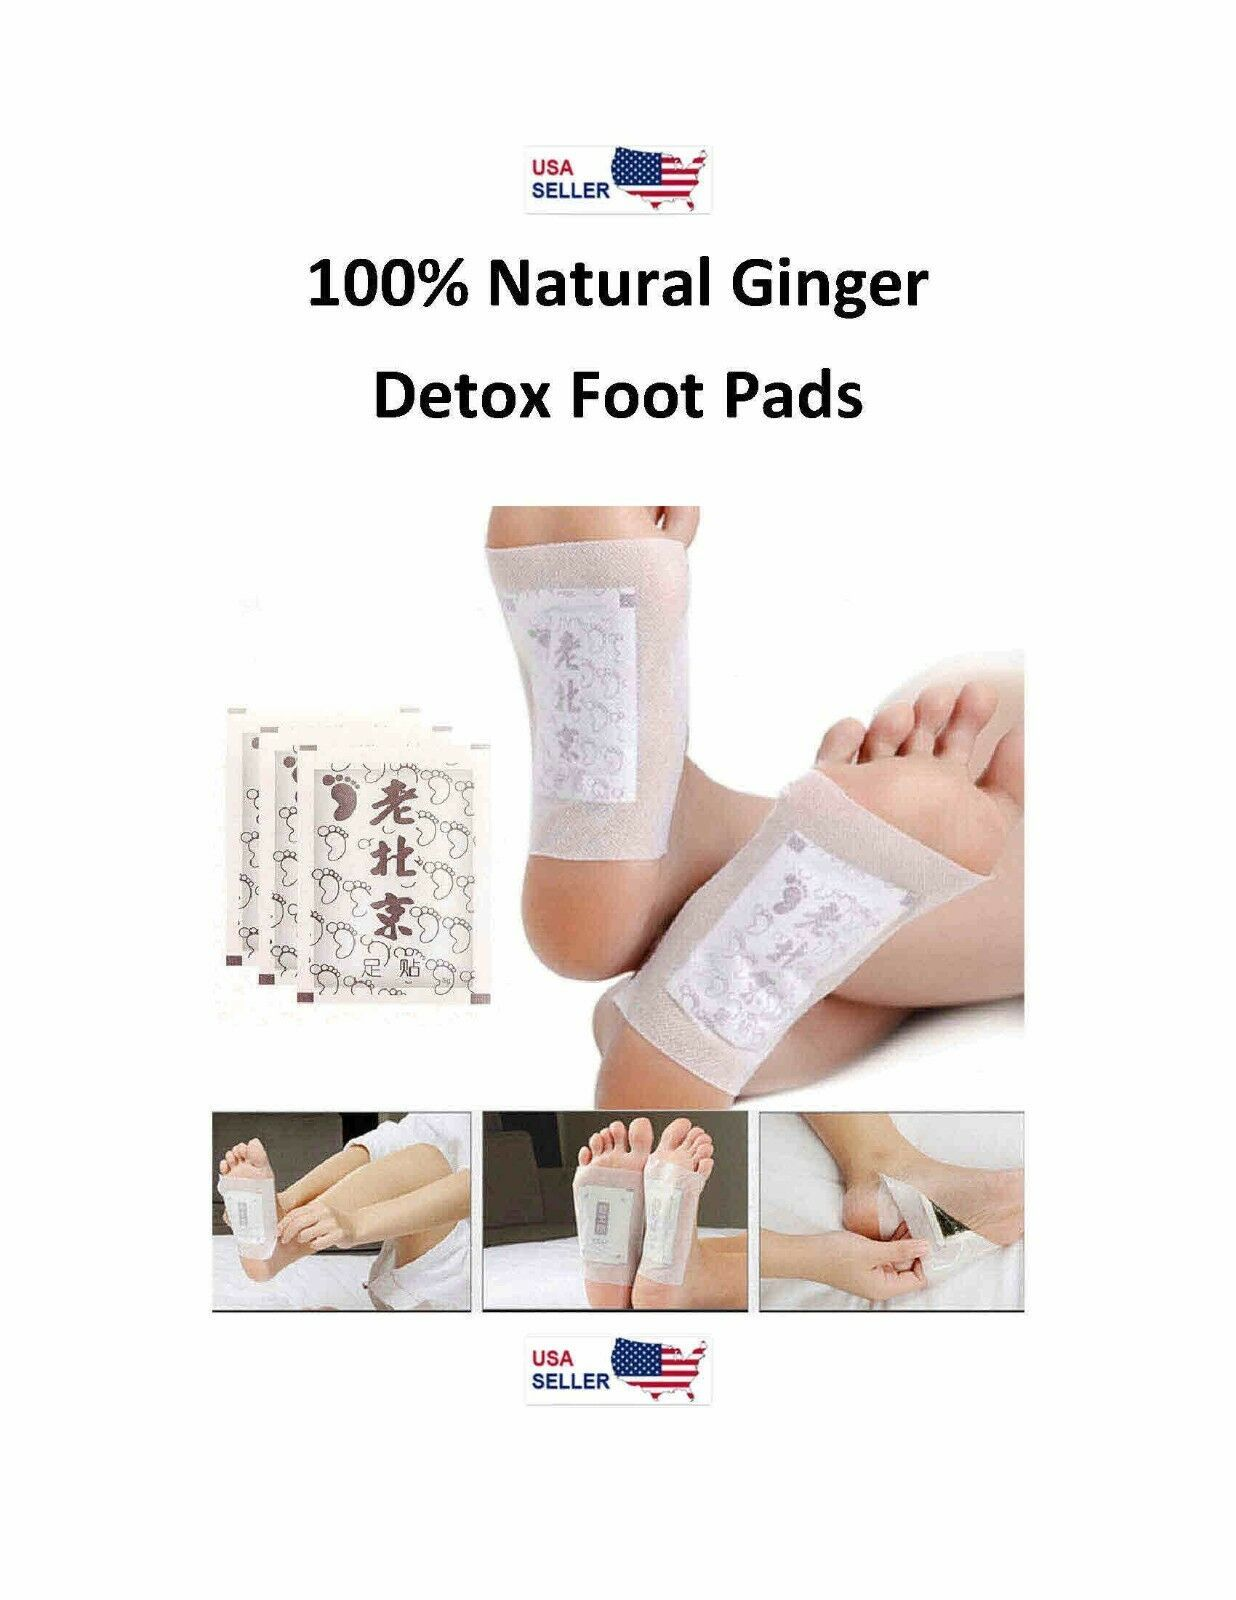 Primary image for 14 Therapeutic Ginger Detox Foot Pads Herbal  Detox Pads FREE USA SELLER